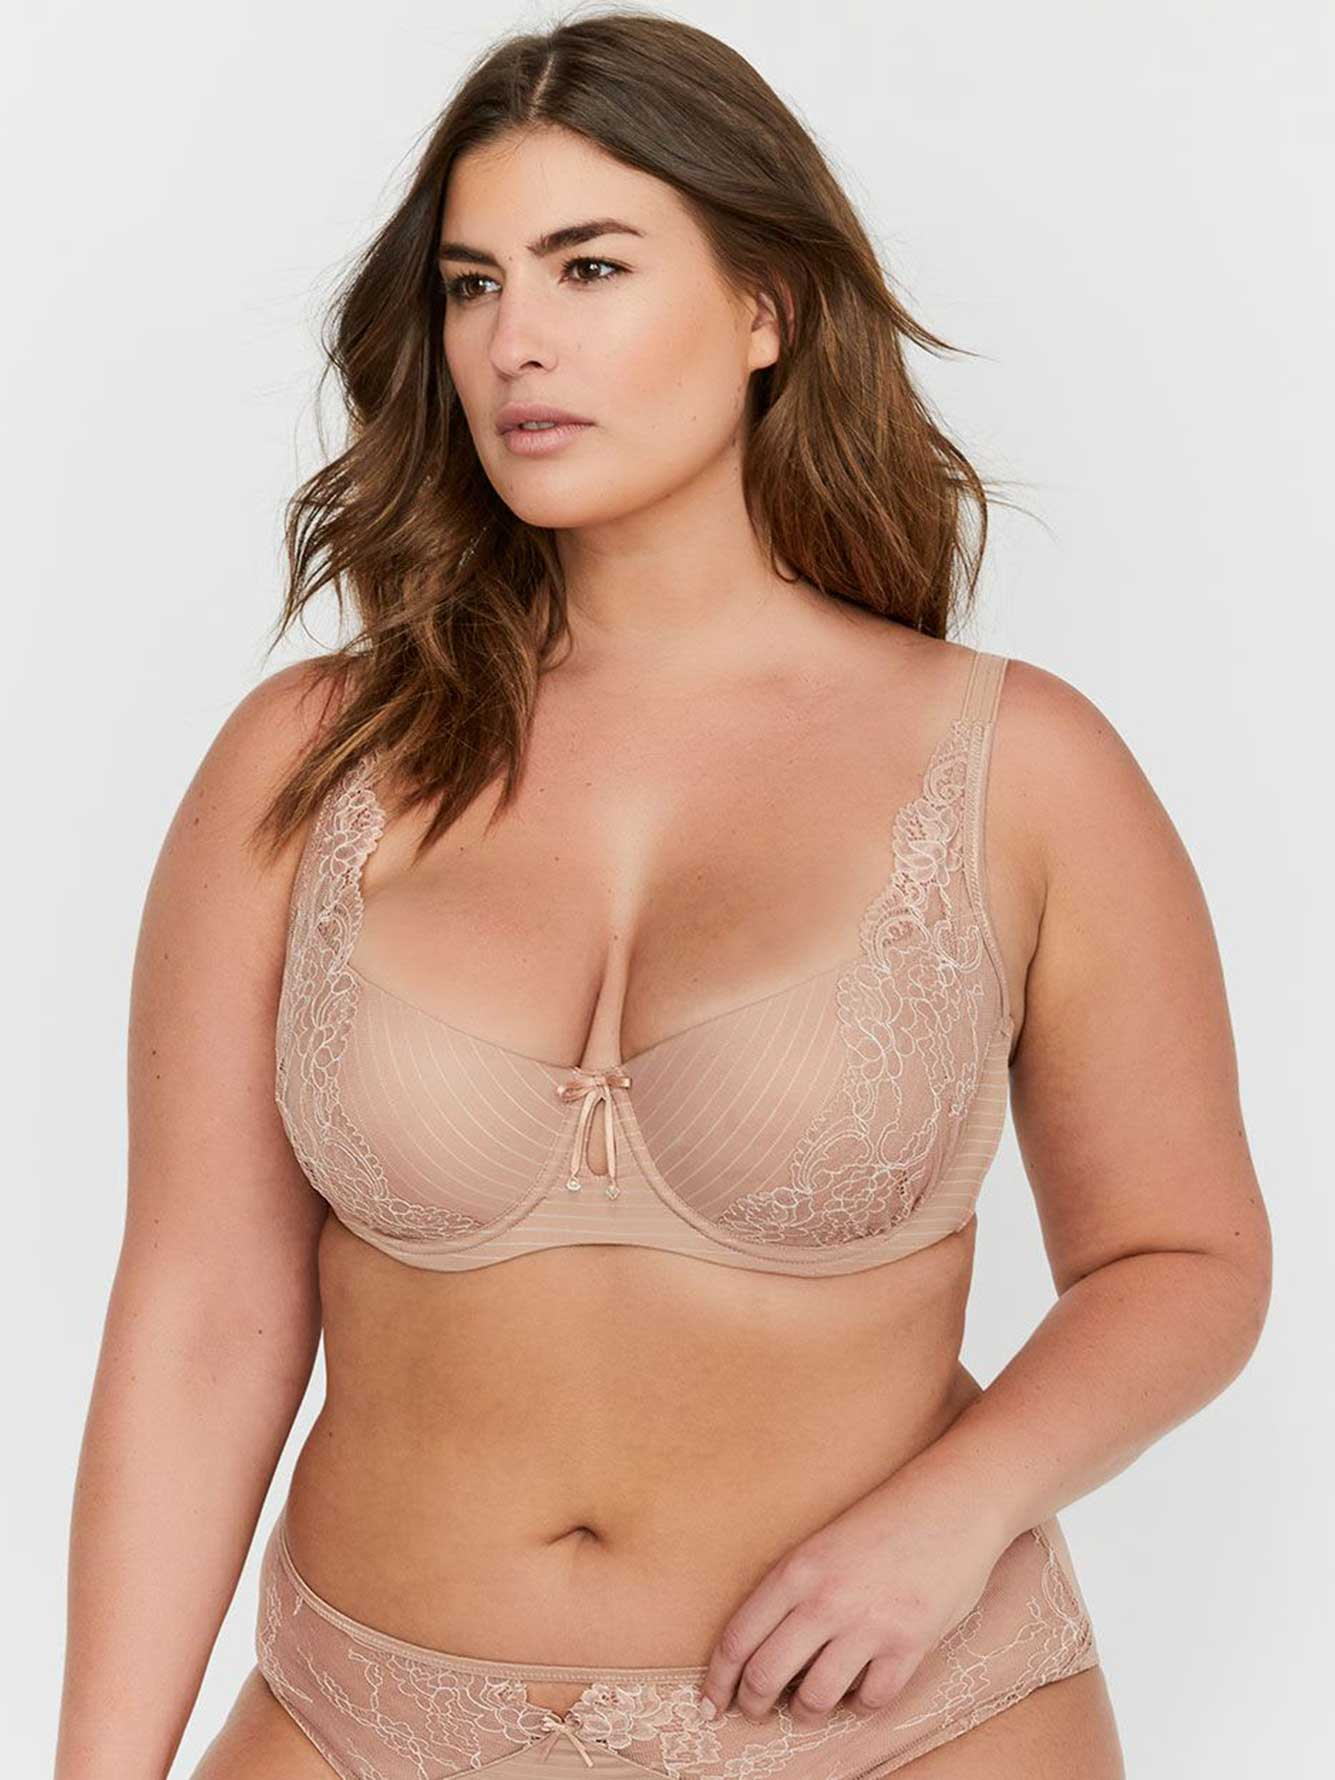 aa76426e21 Ashley Graham Lace and Striped Diva Demi Cup Bra